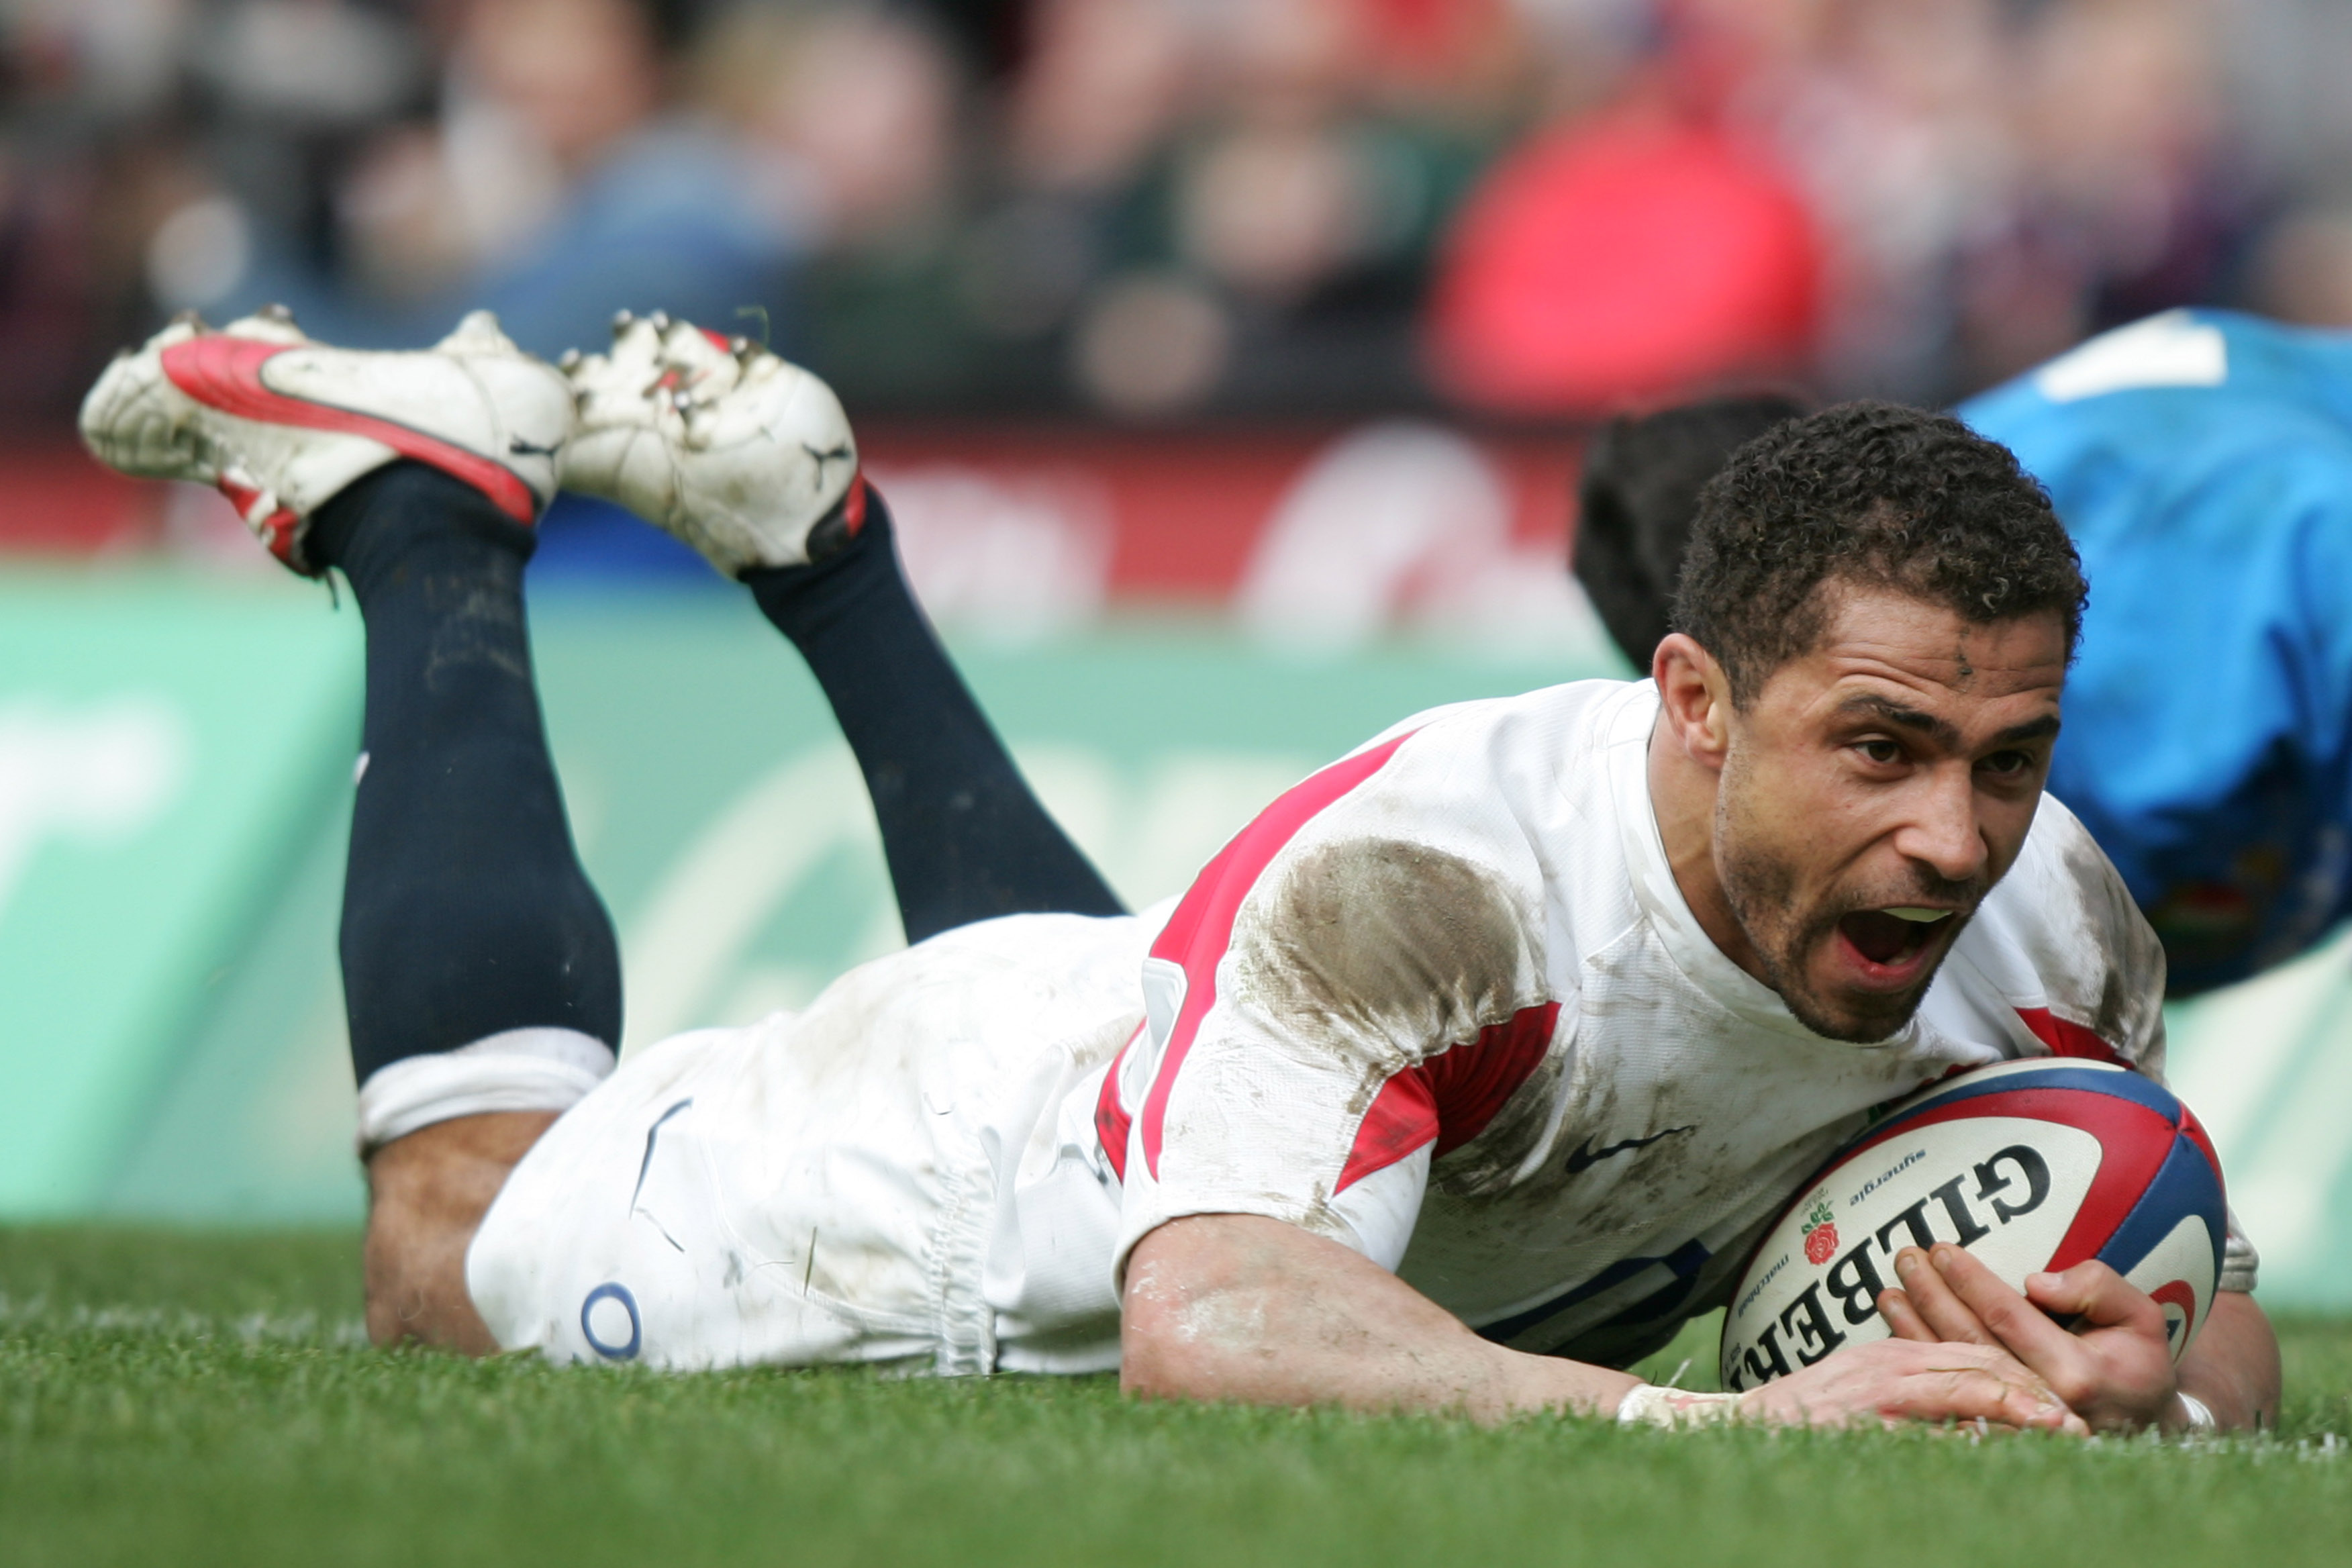 England's Jason Robinson scores a try against Italy during their 6 Nations rugby union match at the Twickenham stadium in west London, England in this...